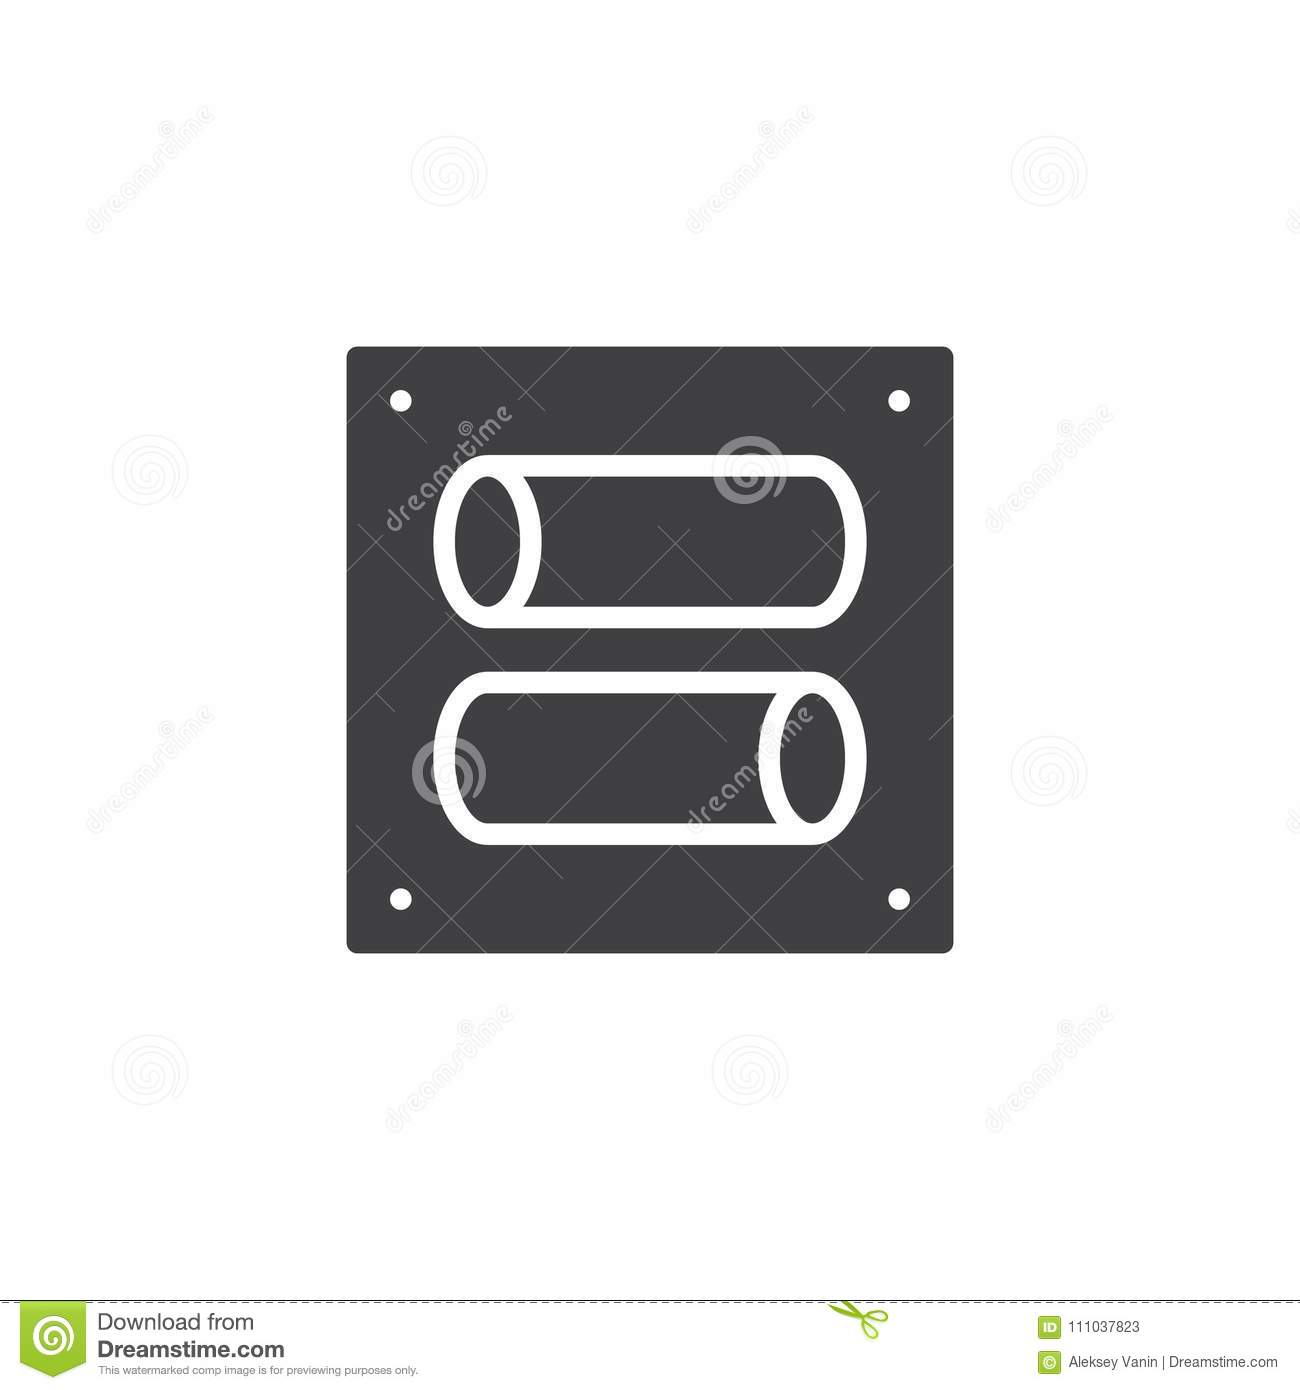 Toggle switches sliders outline icon vertex vhf radio vector icon stock vector illustration of pictogram toggle switch vector icon filled flat sign mobile concept web design tumbler simple solid symbol logo biocorpaavc Images